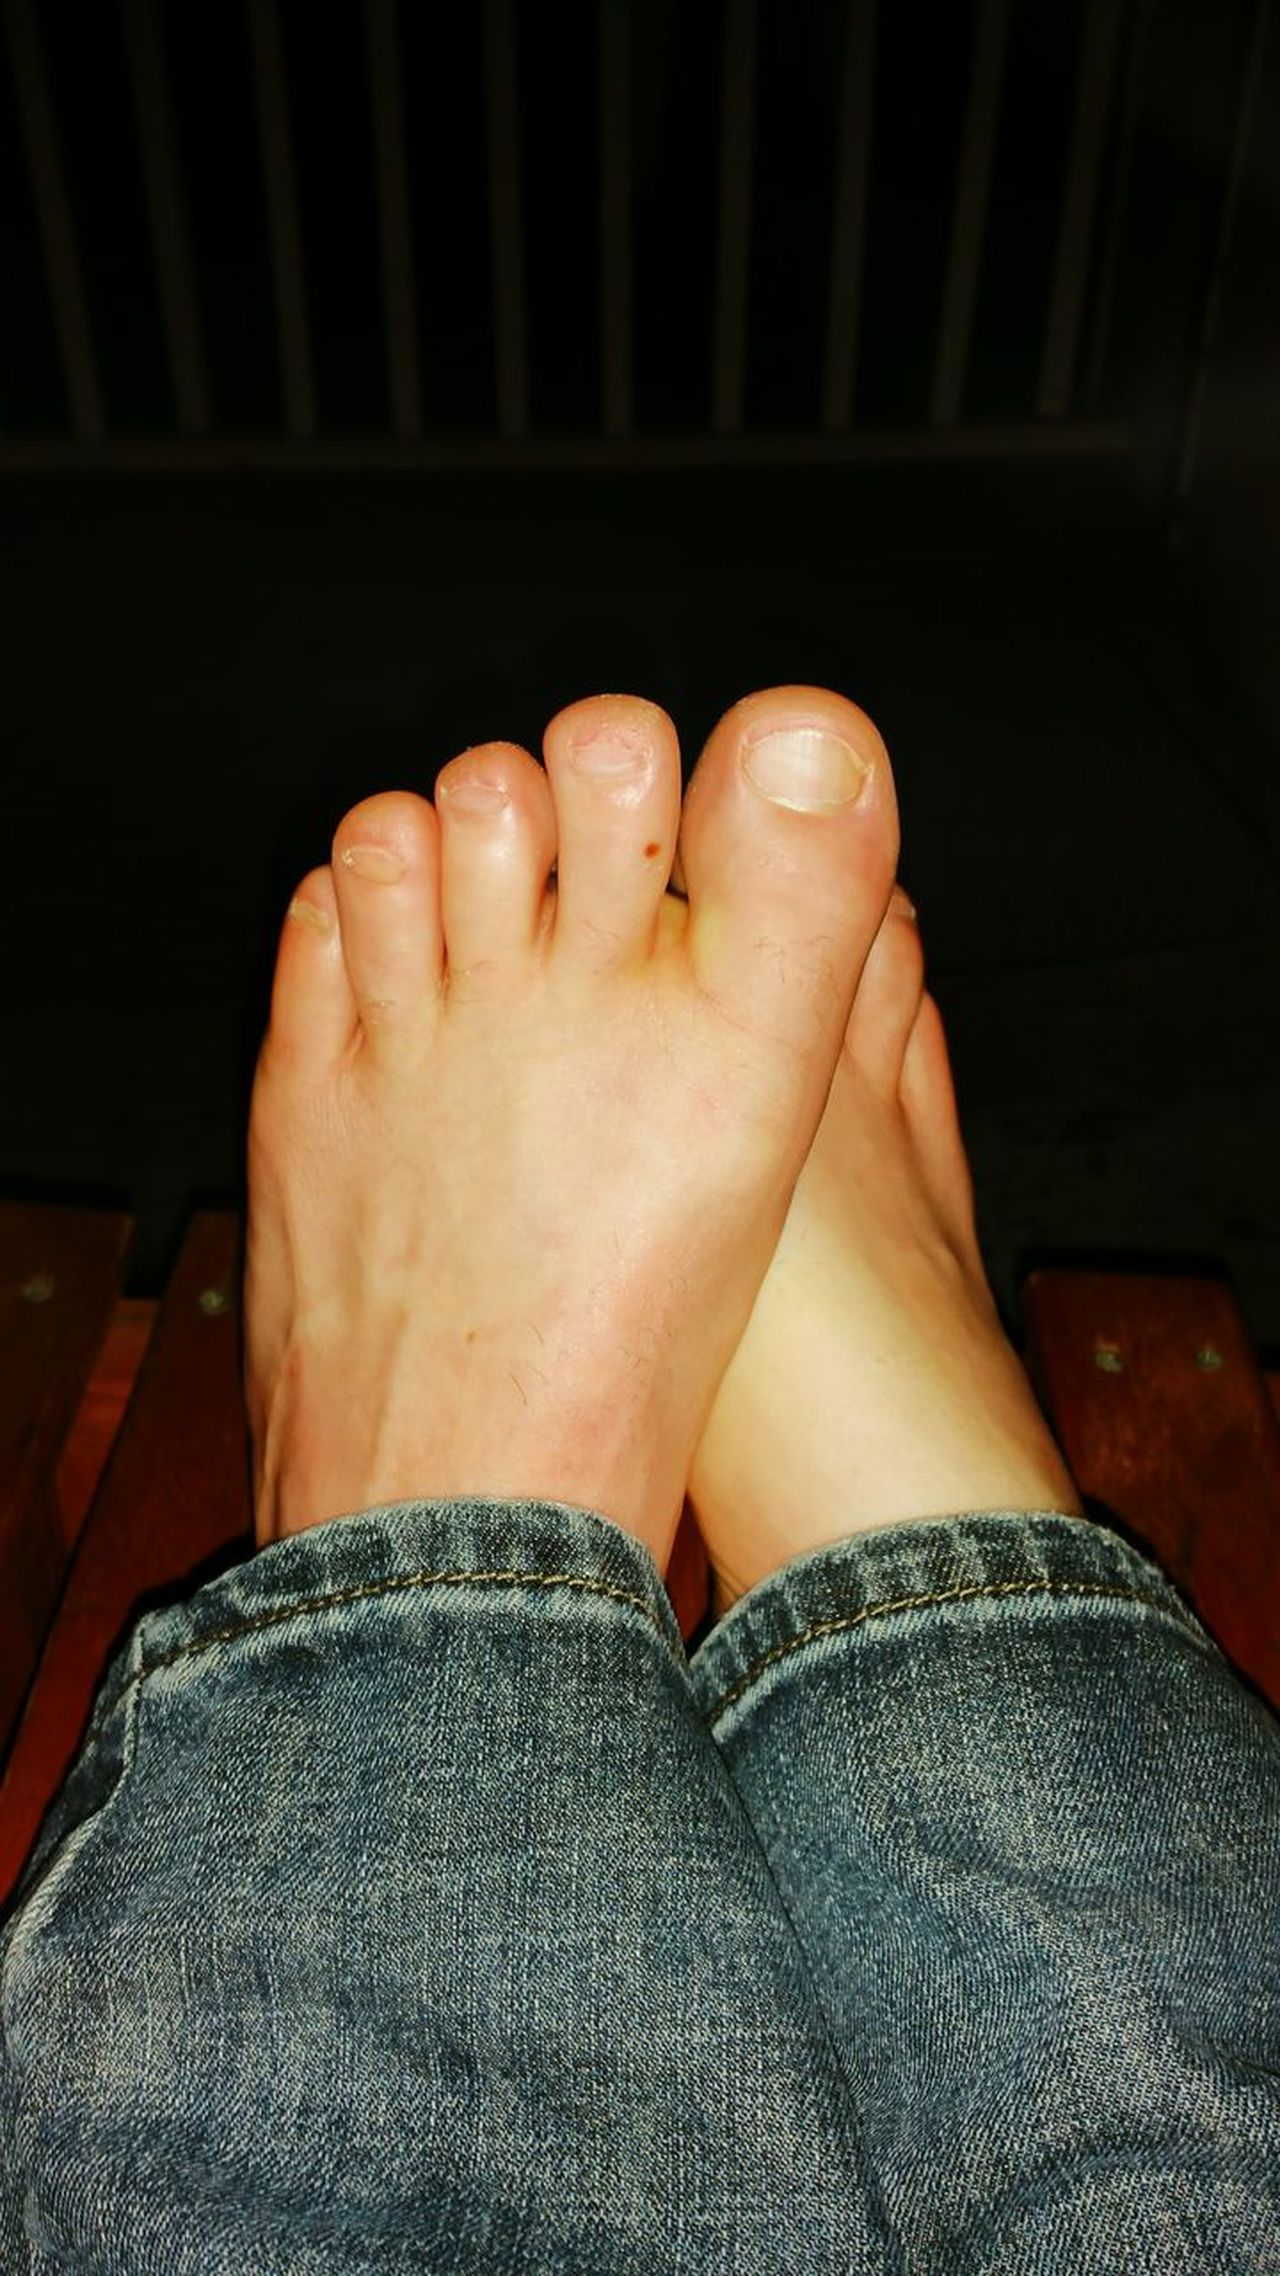 Human Foot Low Section Human Leg Barefoot Personal Perspective Human Body Part One Person Toe Real People Adult Pedicure Myfeet Mytoes Toes Sexyfeet